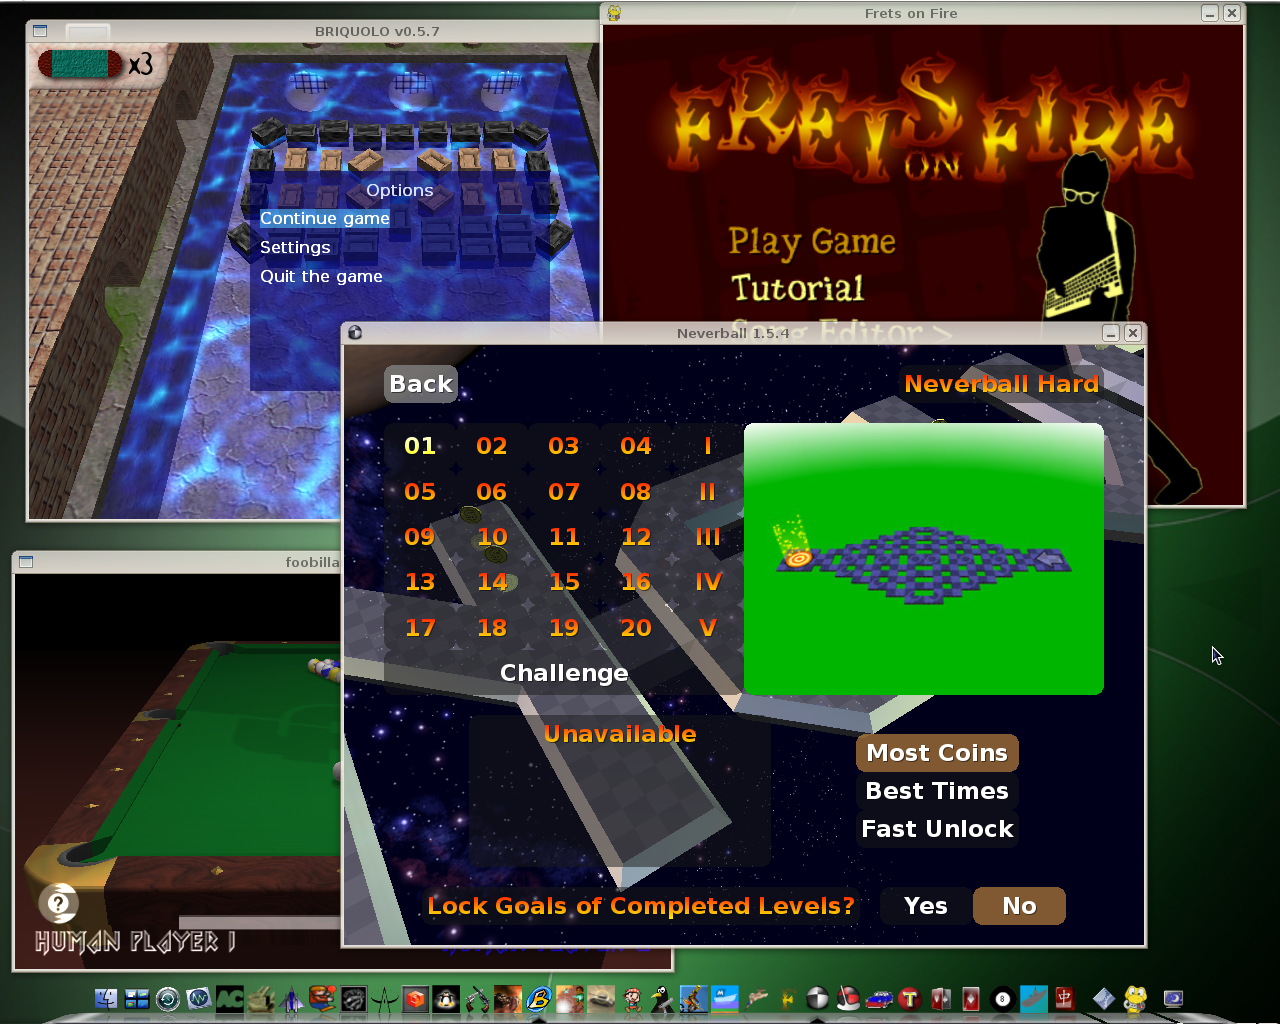 Index of /MIB/2010 0/64/projects/iso/MibLive-Games